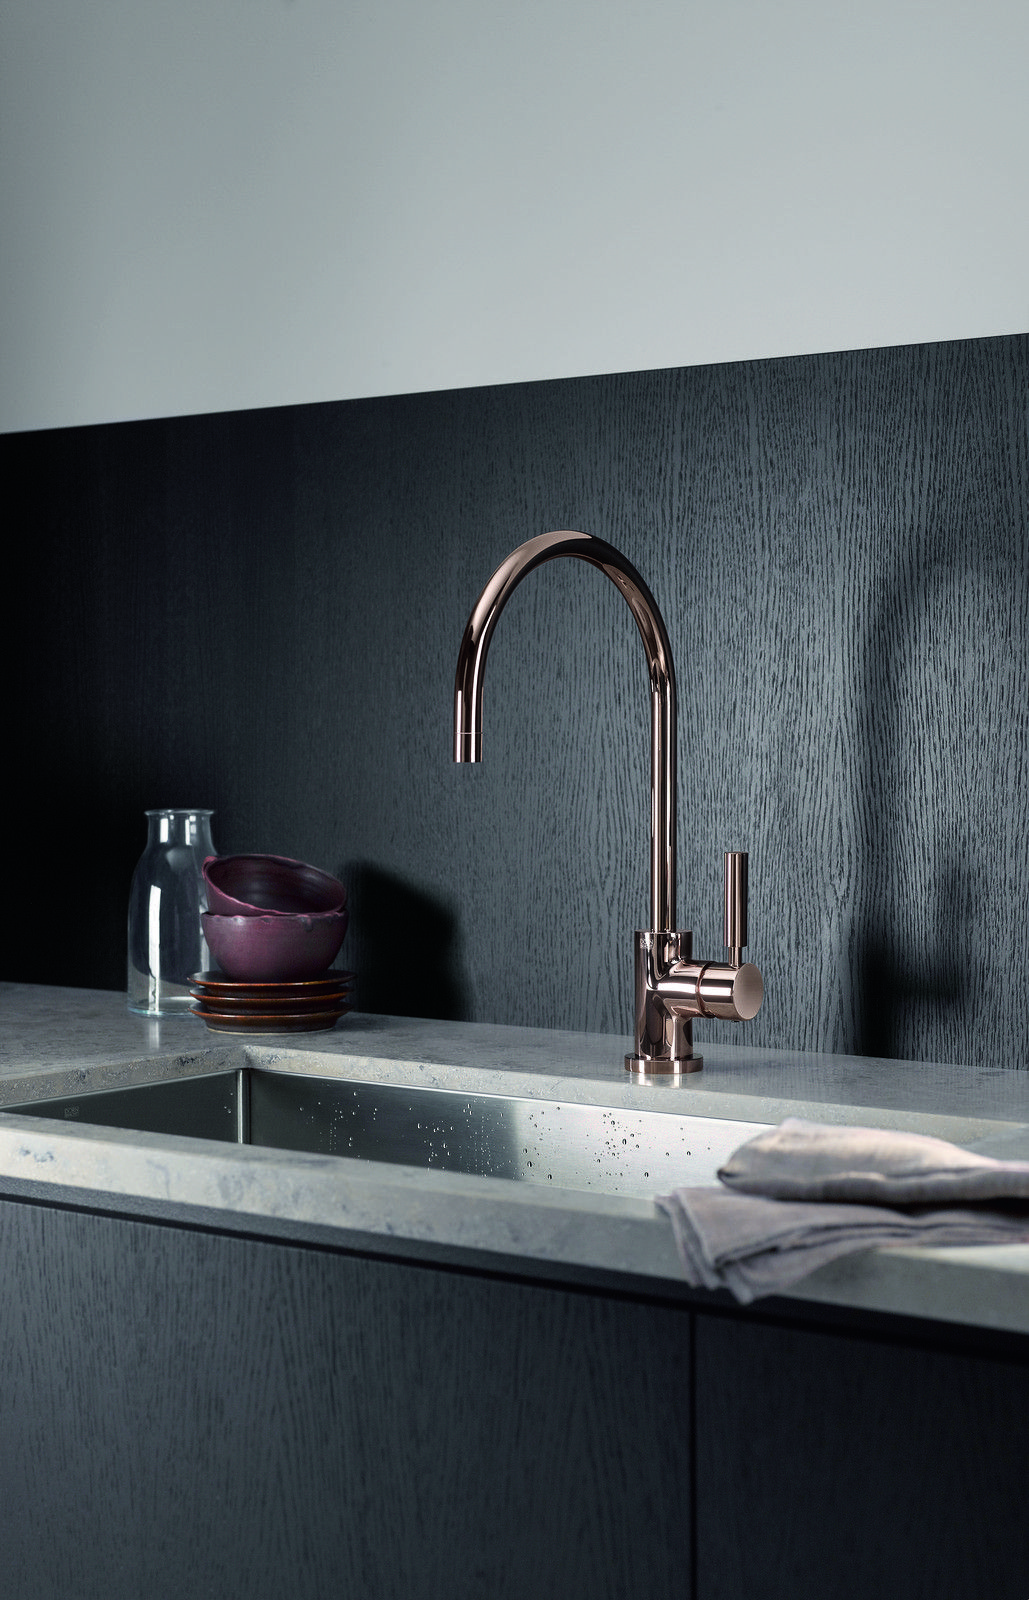 Cyprum Kitchen Kitchen fitting Dornbracht Kitchen Faucets